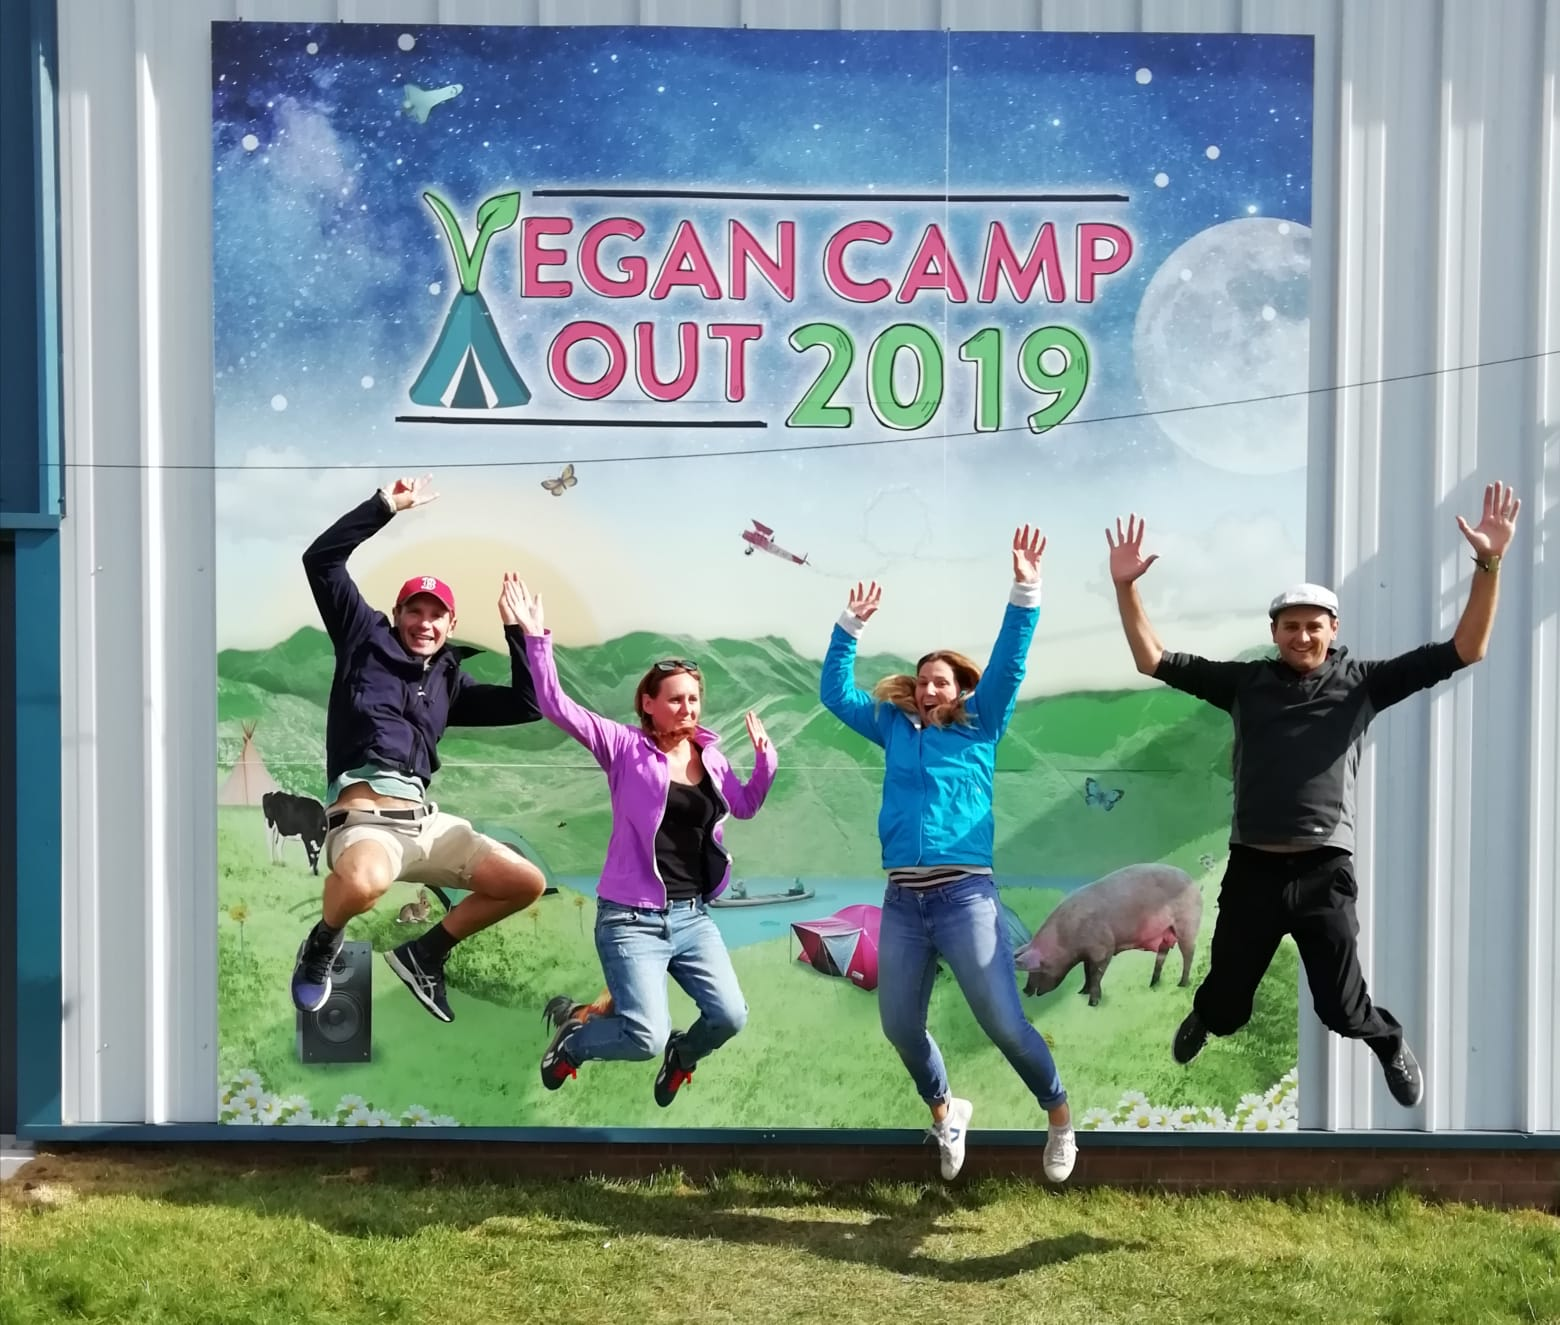 Jumping for joy at the Vegan Campout 2019